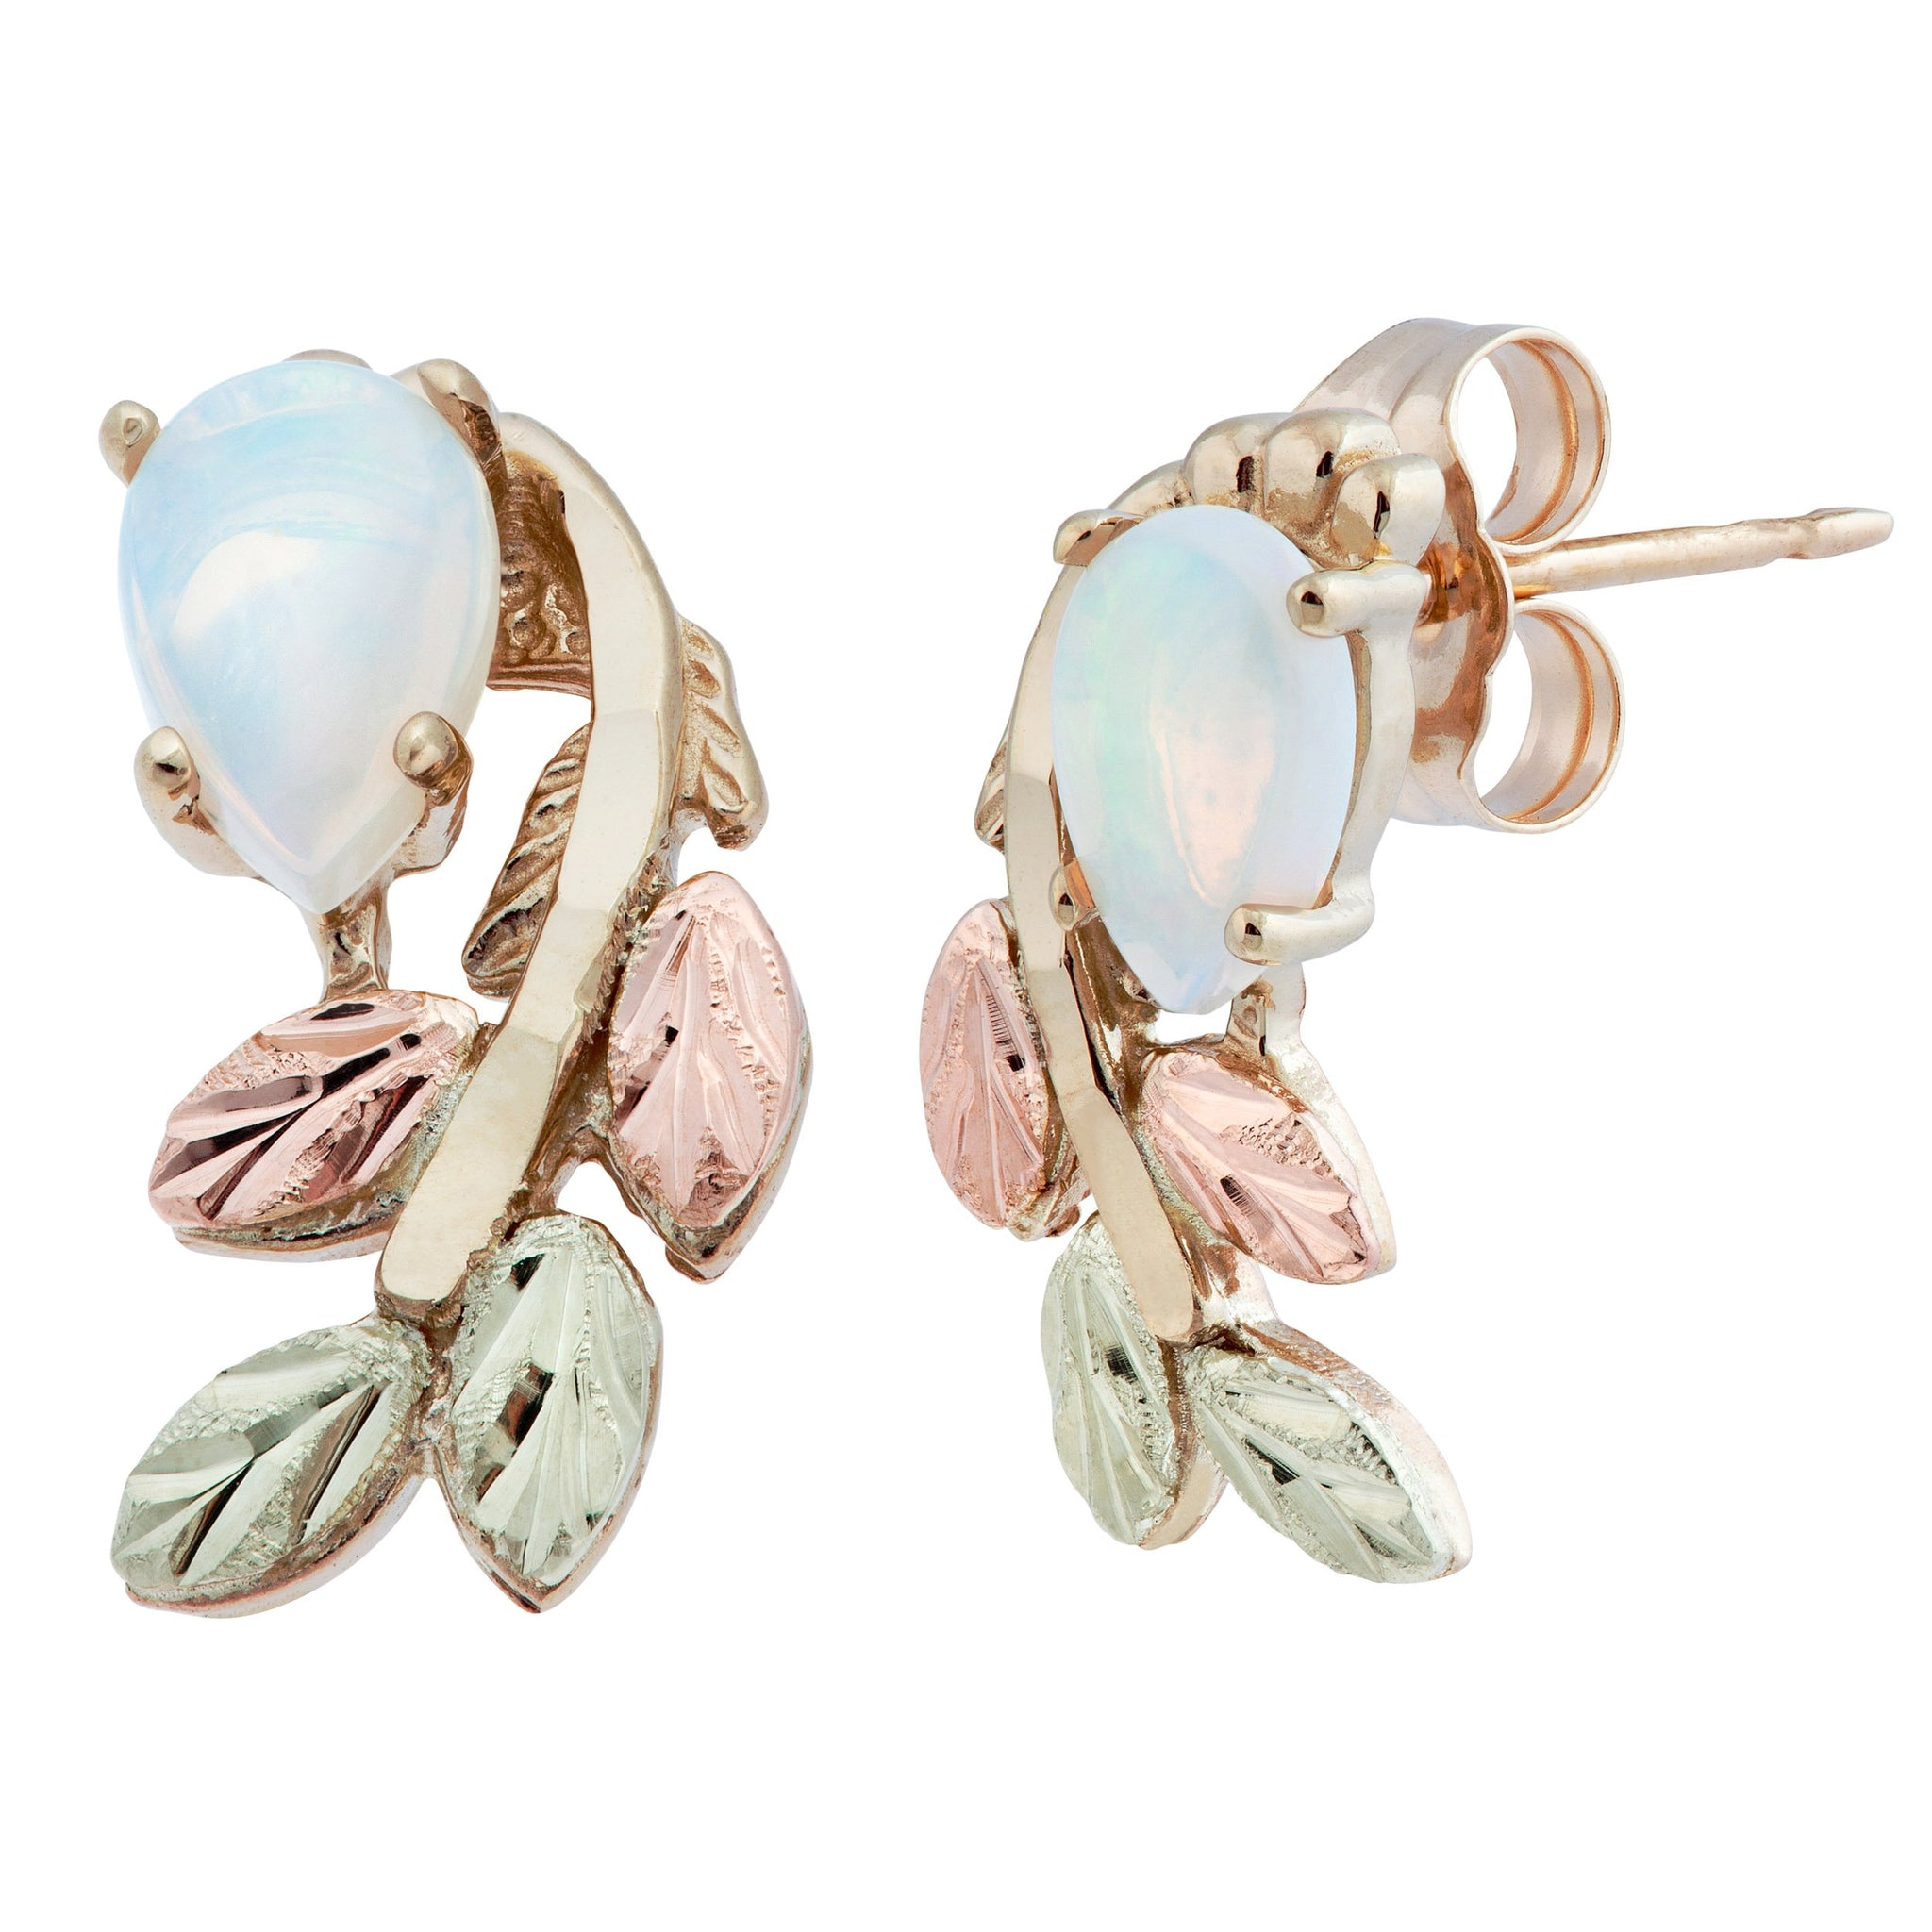 bodycandy collections faux opal left nose blue genuine screw earrings rilrgwvbwzidzezzpaej pronged gauge rings